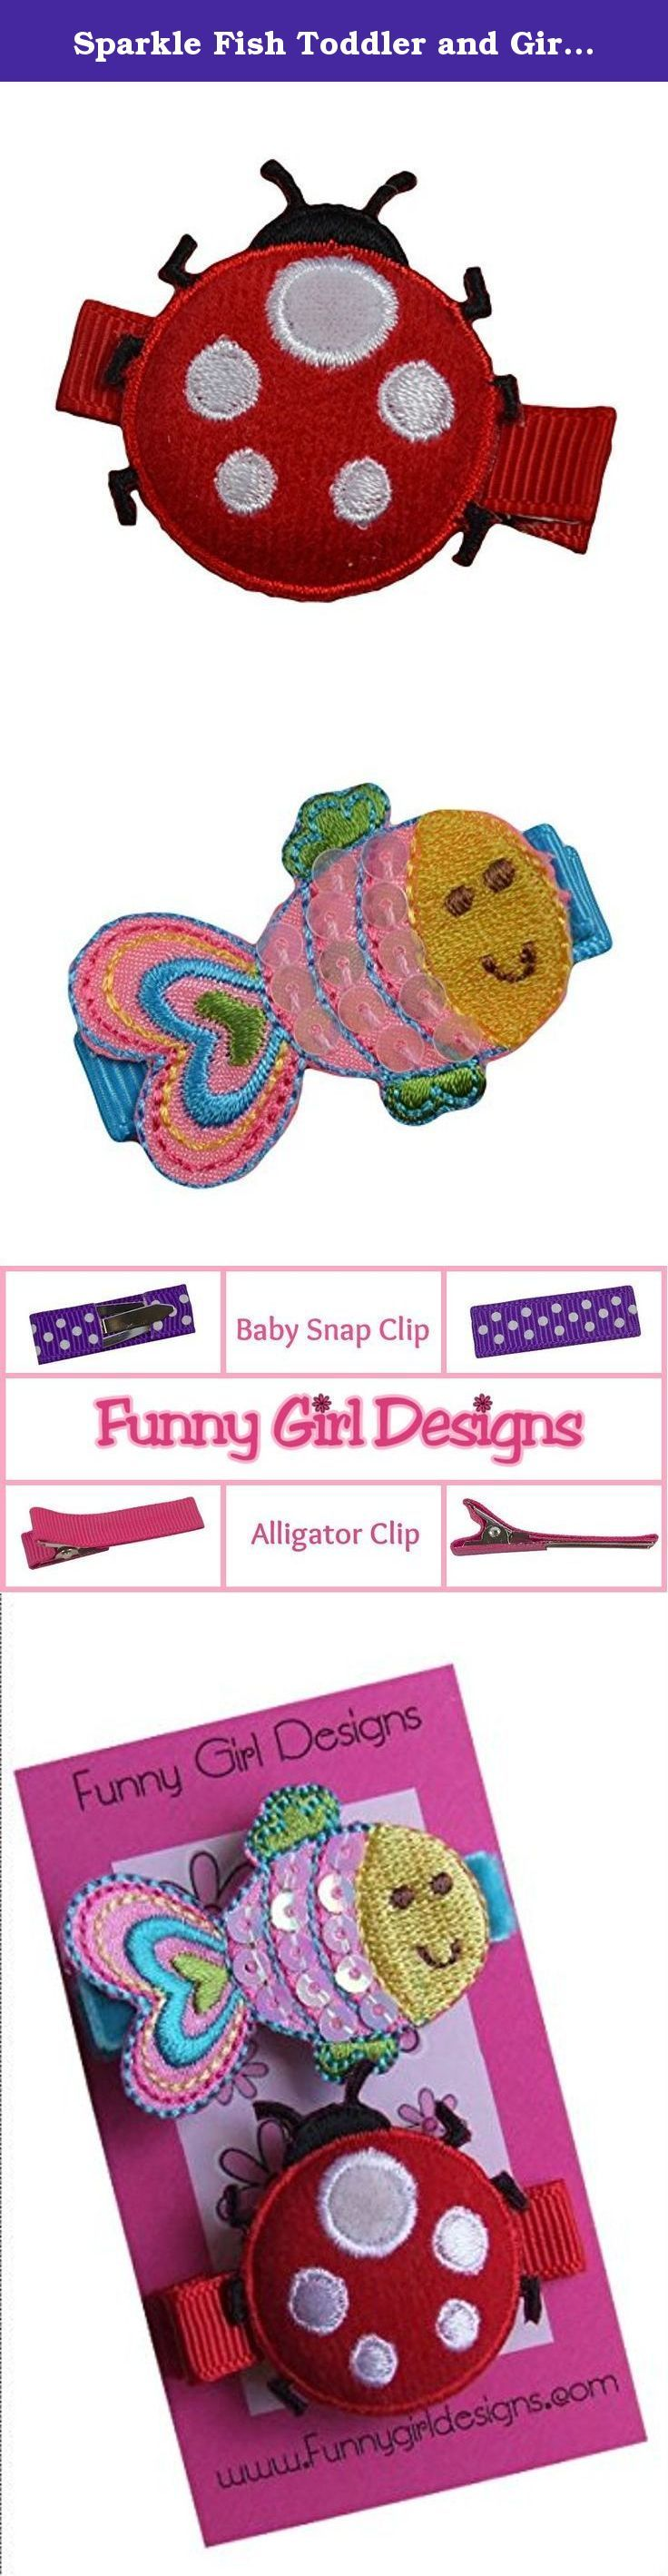 Sparkle Fish Toddler and Girls Hair Clip Set. Sparkle Fish Toddler and Girls Hair Clip Set.